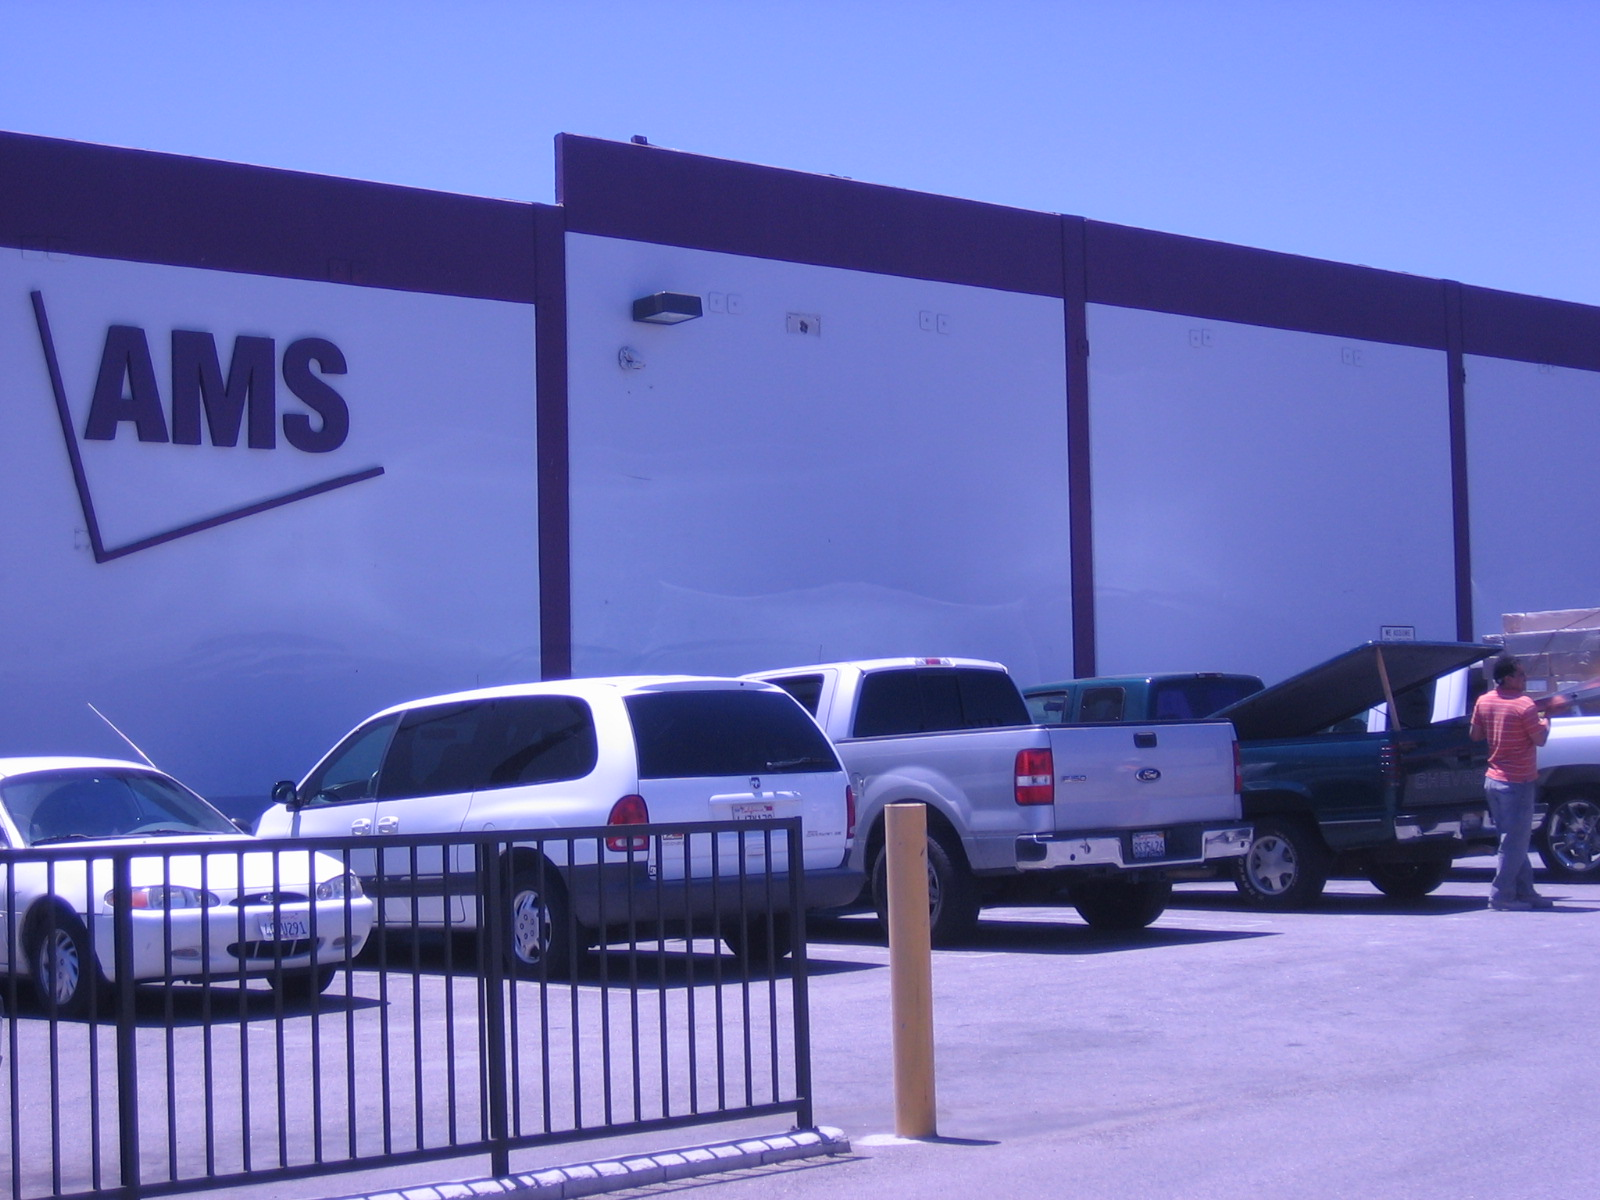 AMS - Acoustical Material Services 7945 Orion Ave, Van Nuys